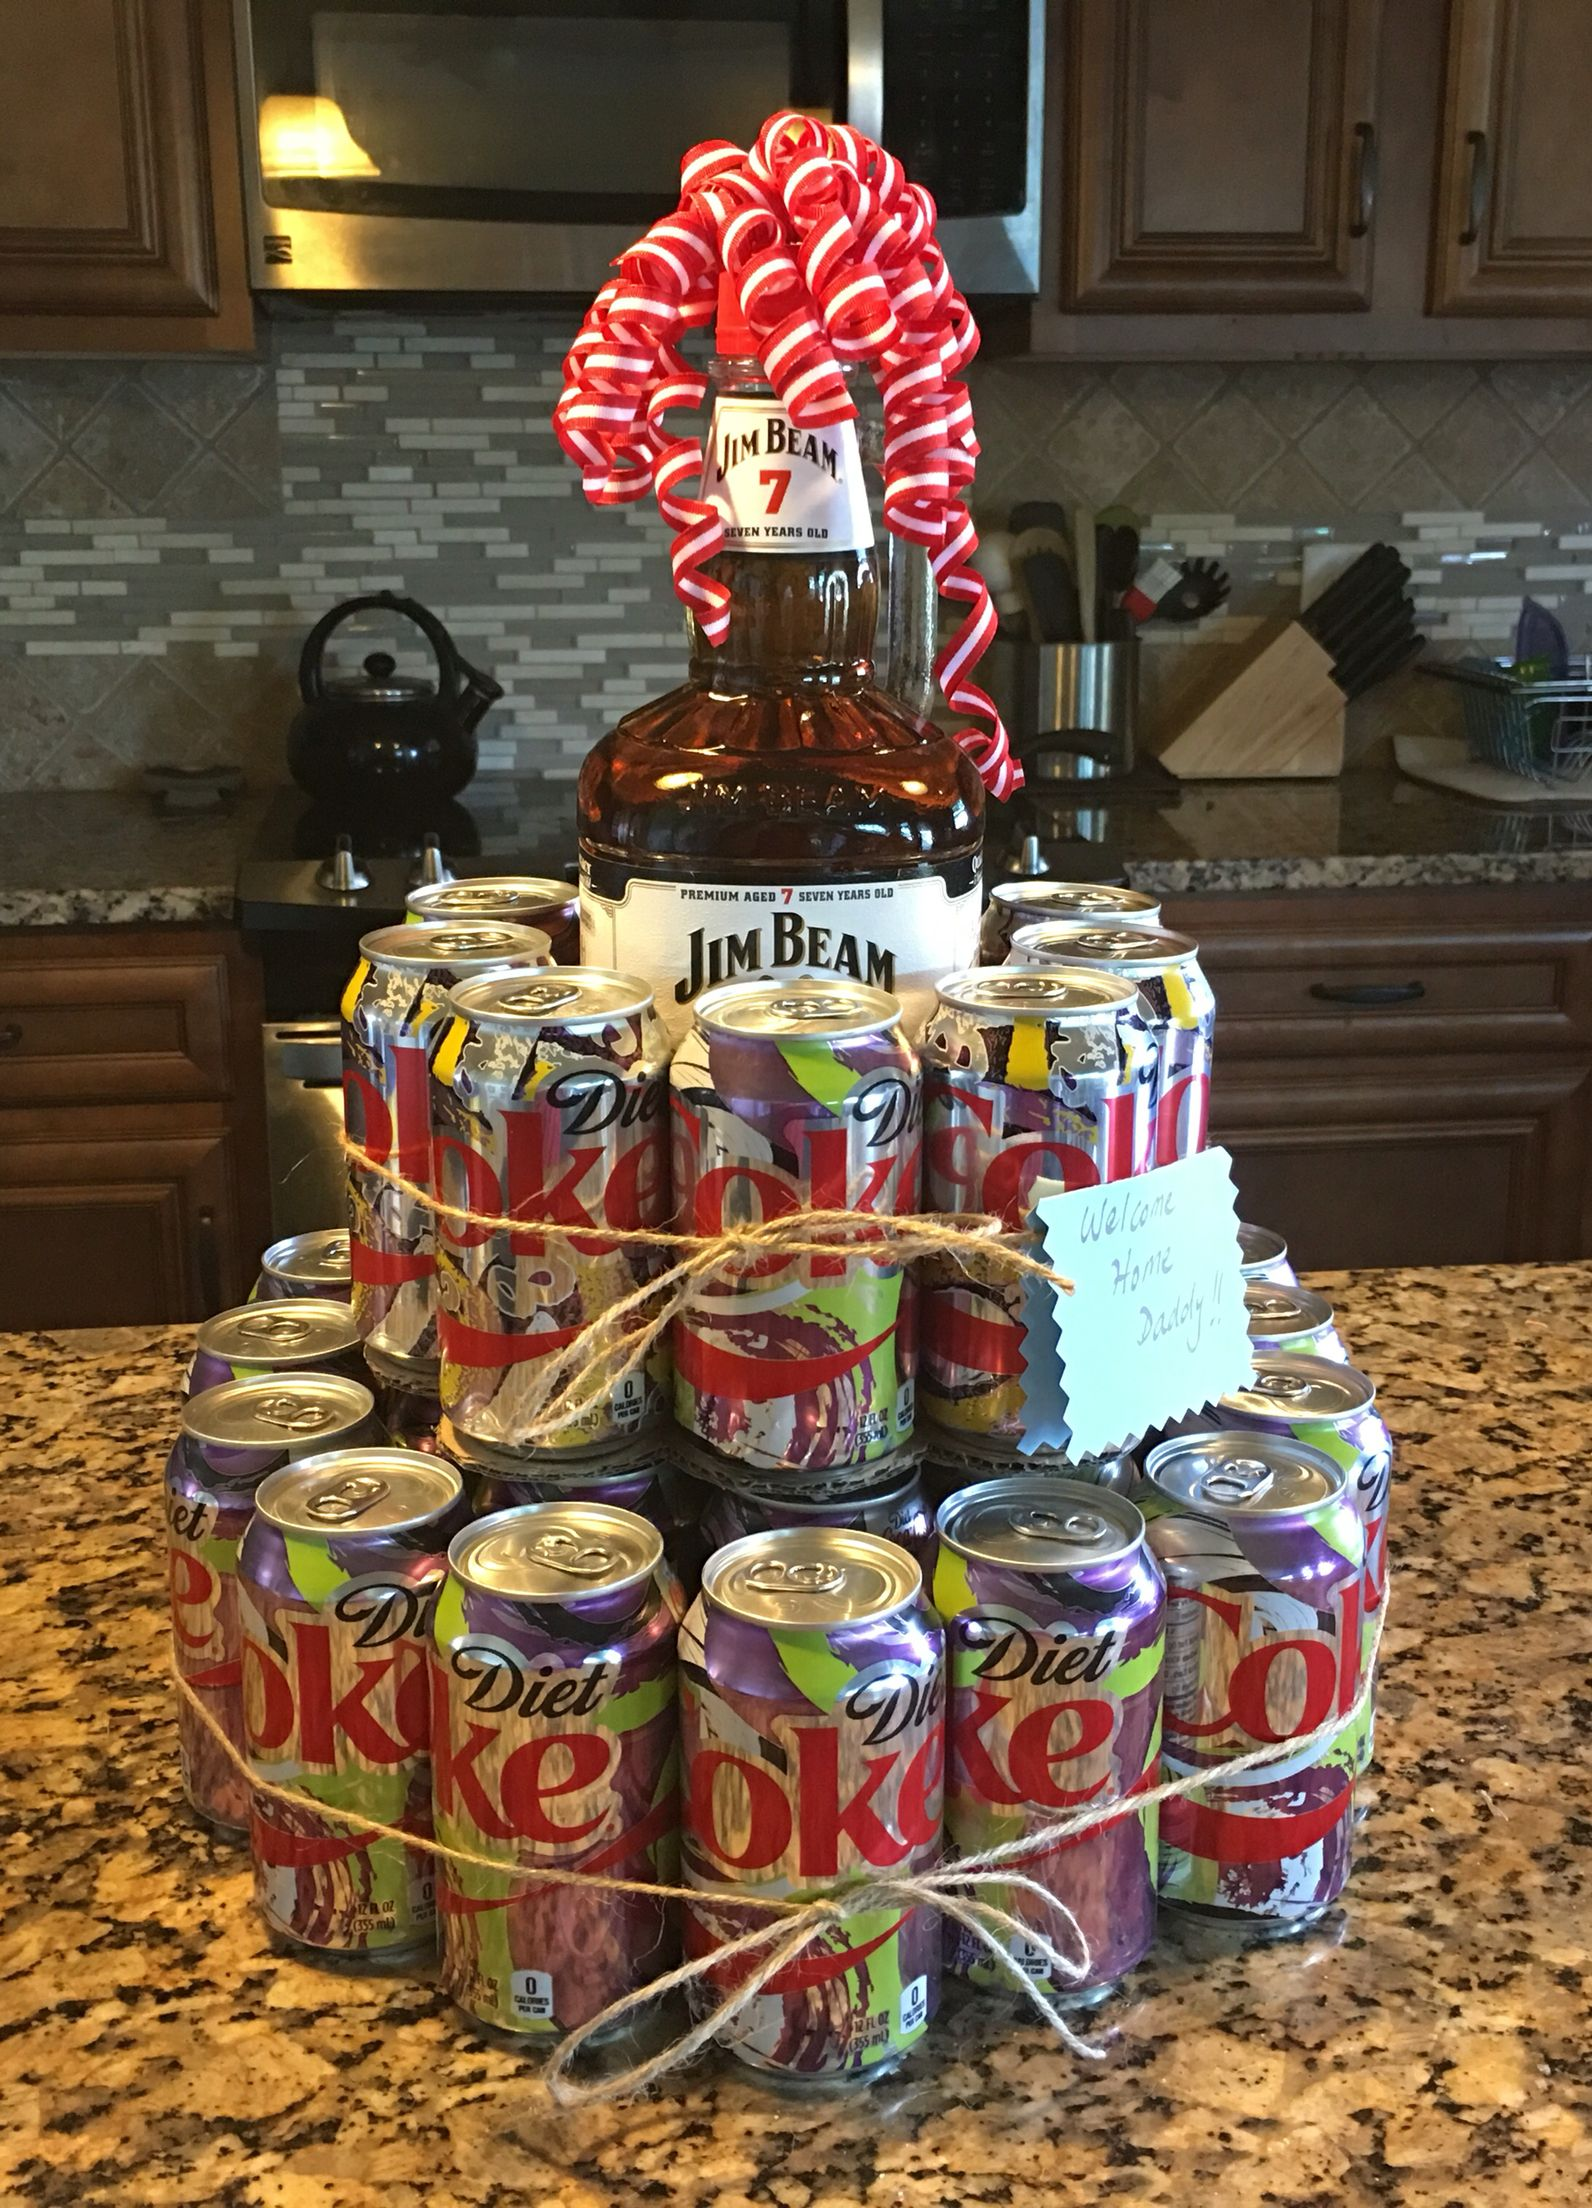 Jim Beam cake I made for a welcome home gift. | Liquor cake crafts ...